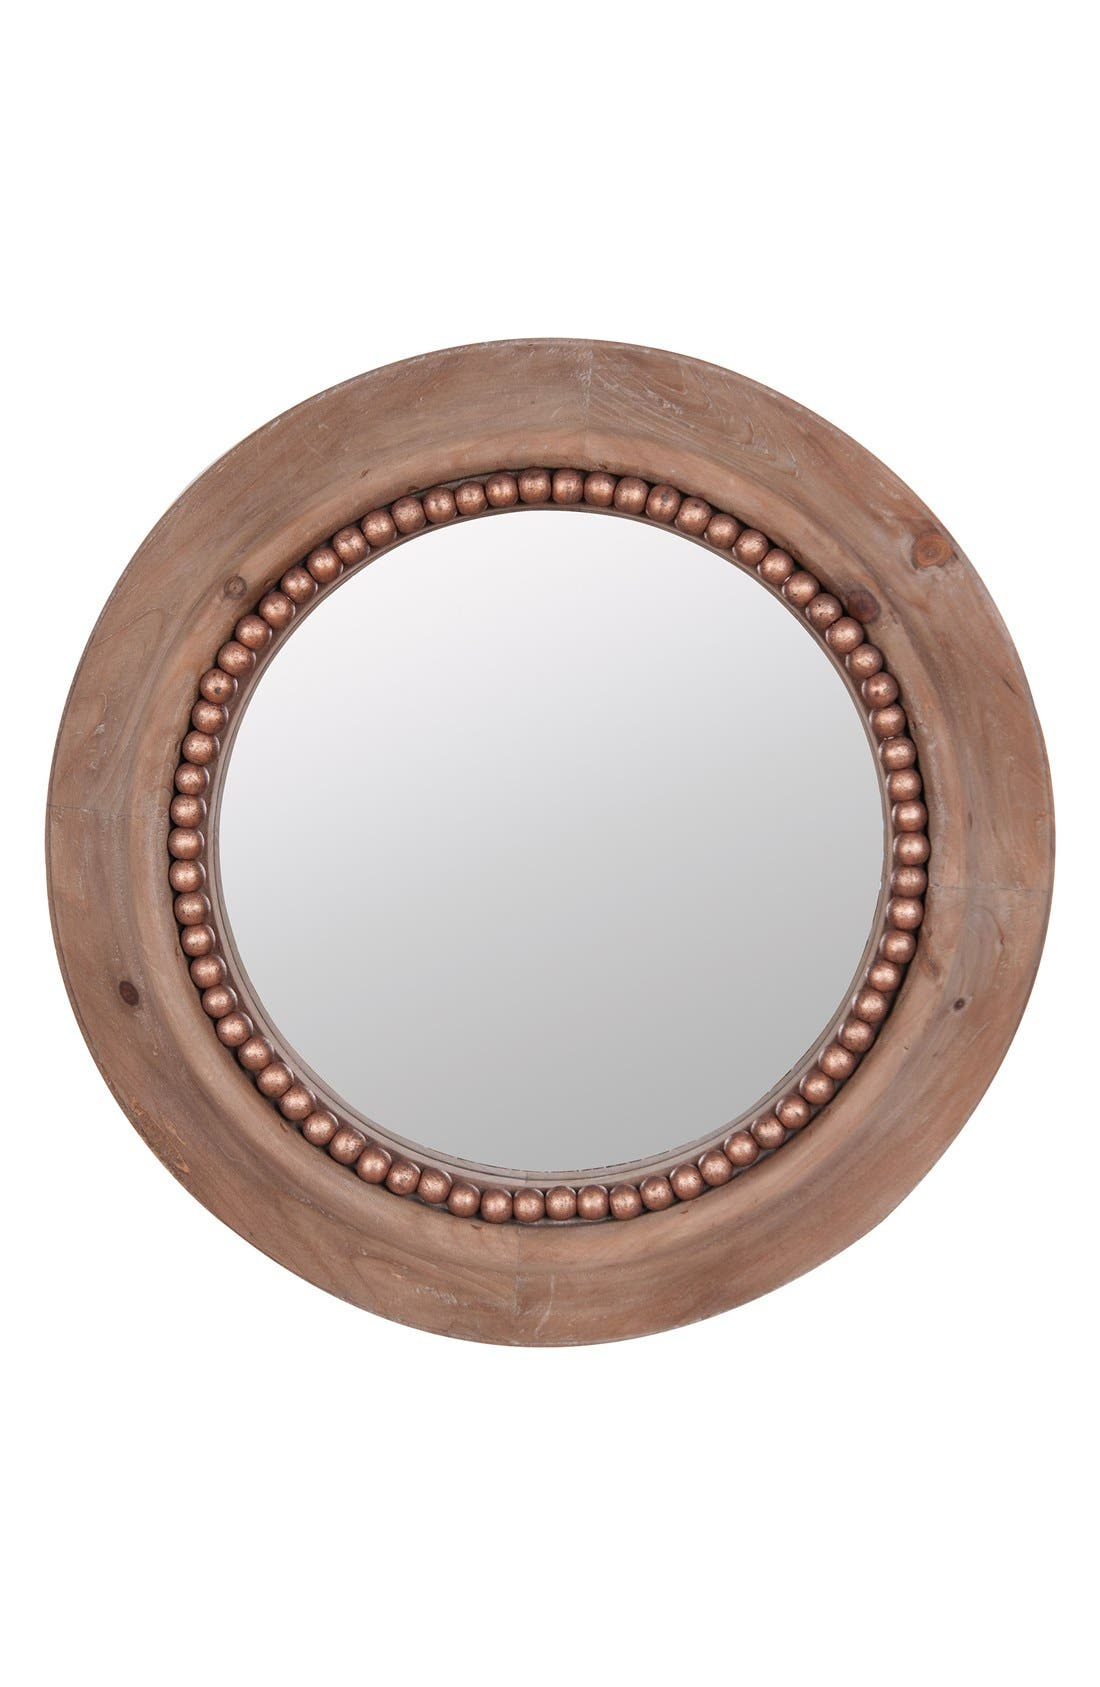 Main Image - Foreside Round Beaded Wall Mirror